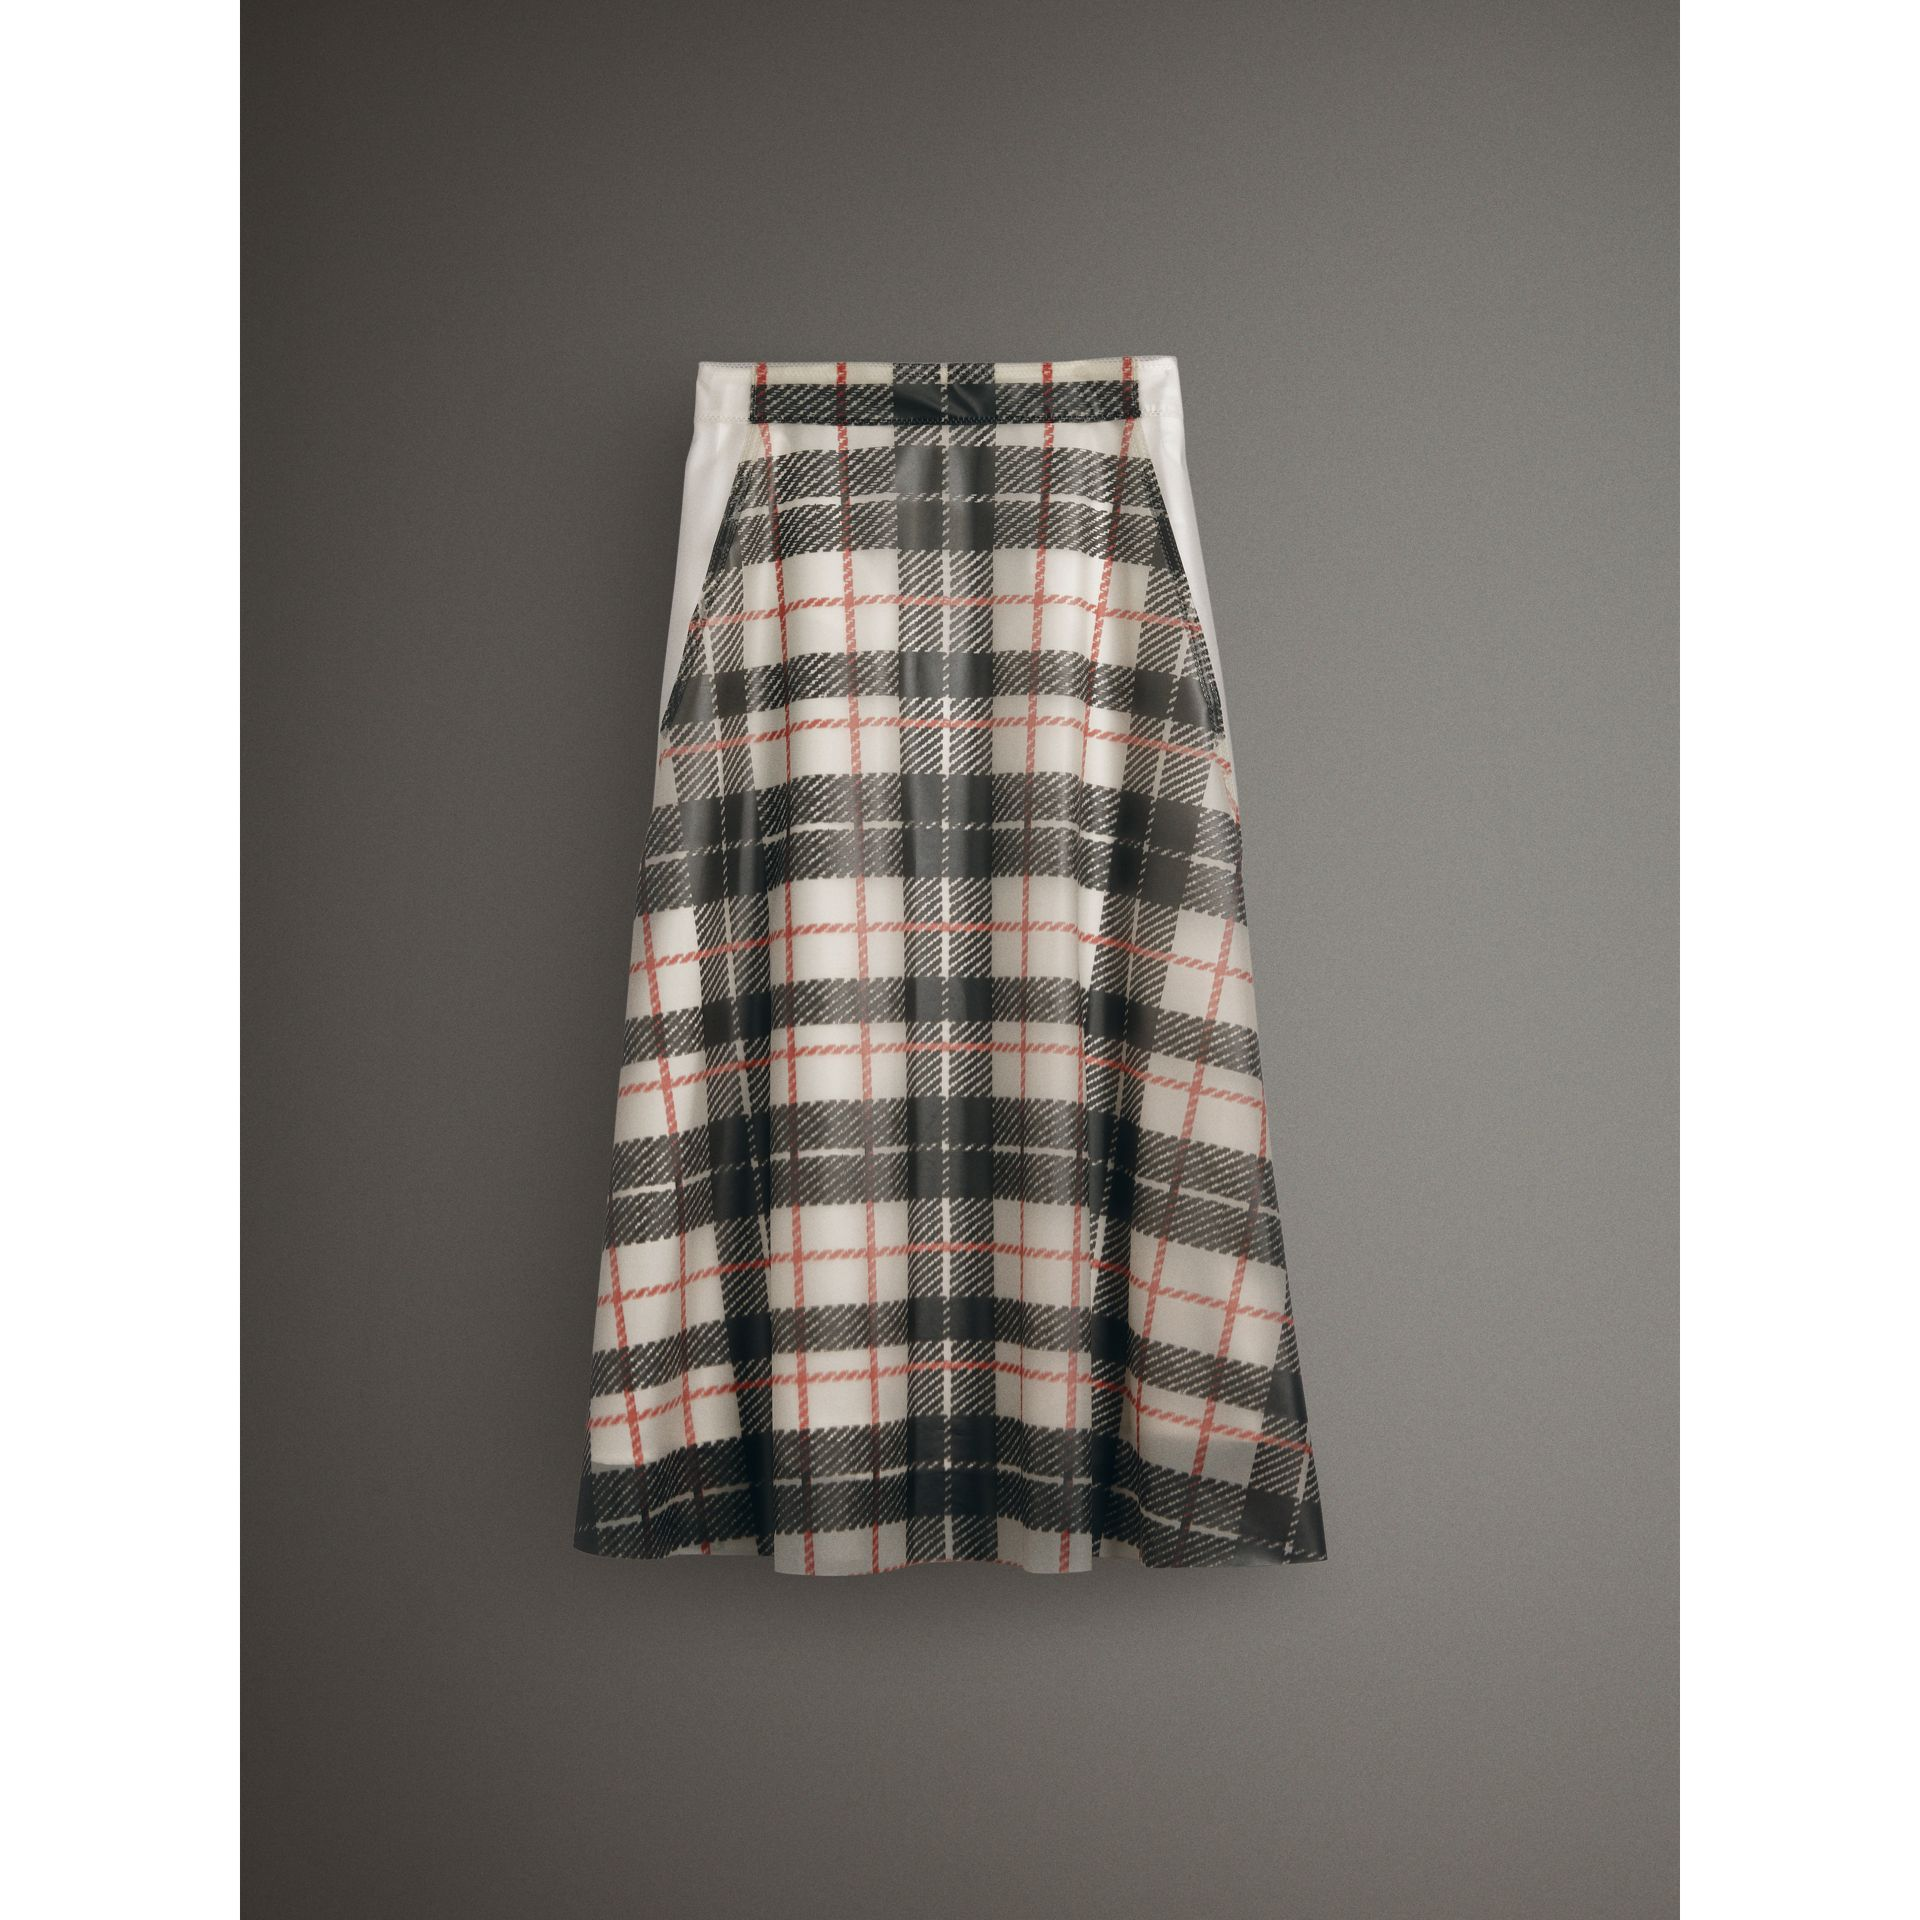 Silk-lined Tartan Plastic A-line Skirt in Black/beige - Women | Burberry United Kingdom - gallery image 3